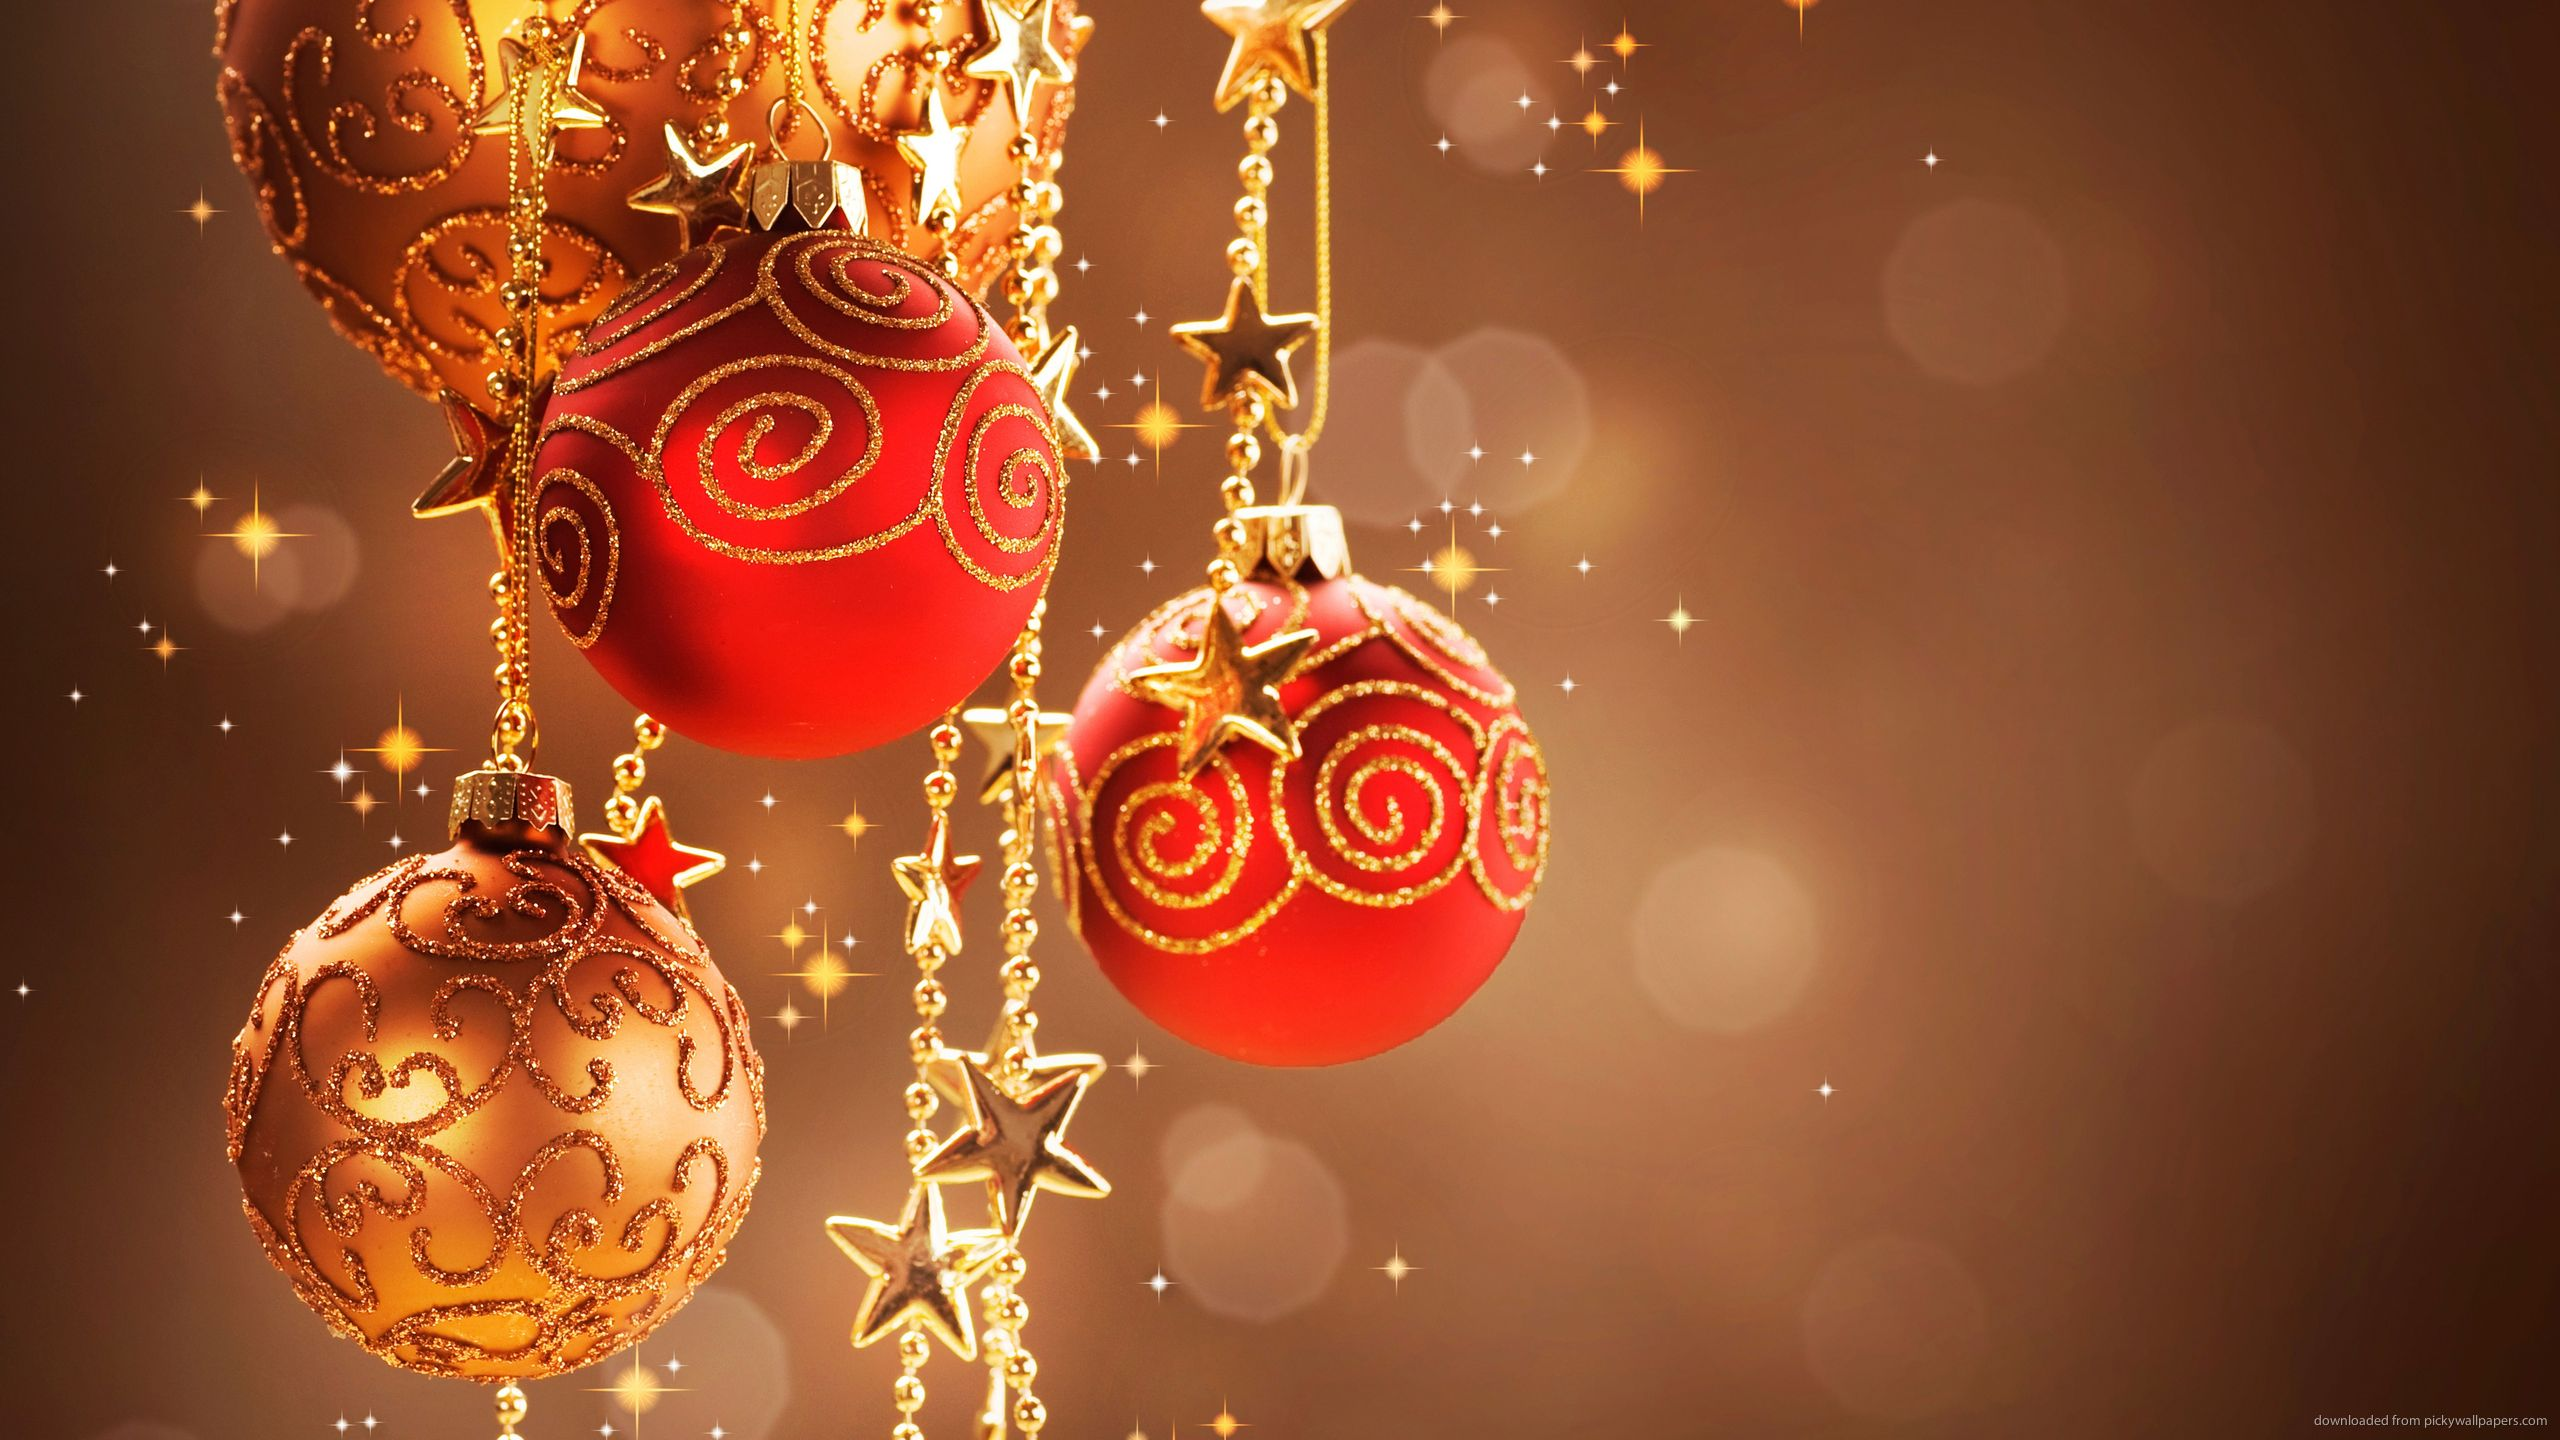 Hd Christmas Wallpaper.45 Ultra Hd Christmas Wallpapers On Wallpapersafari